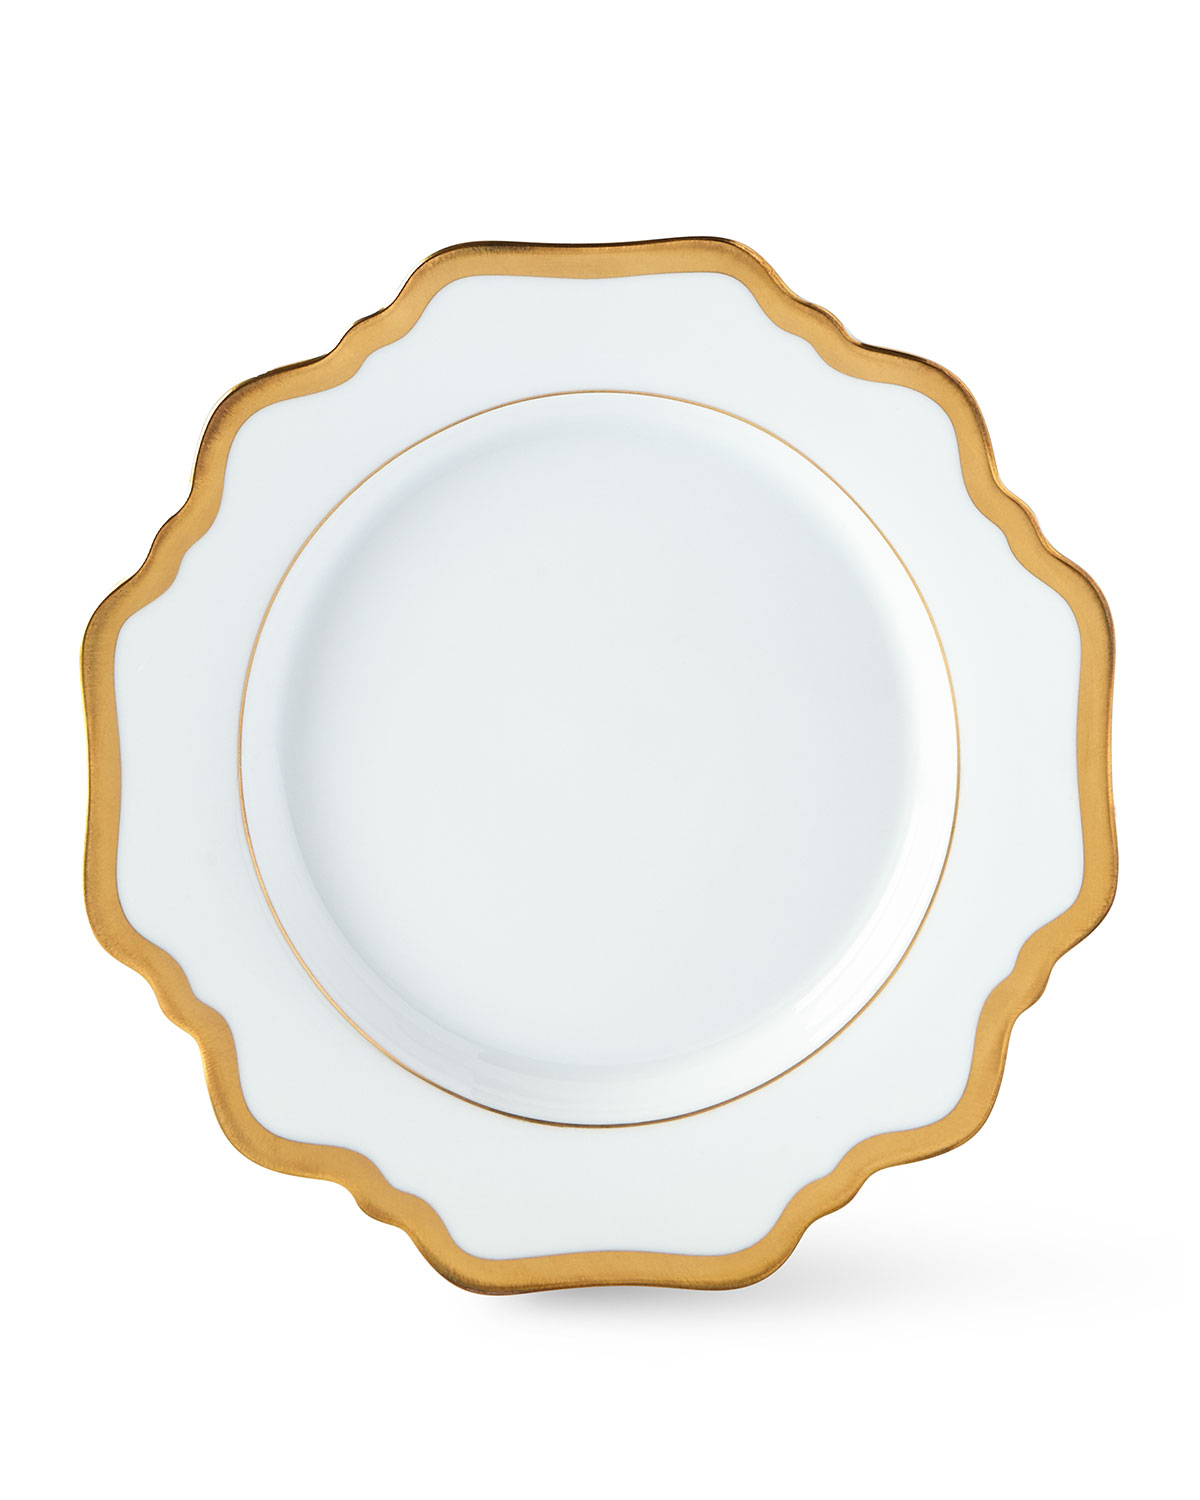 """""""Antique White with Gold"""" bread & butter plate. 6.5""""Dia. Scalloped fine porcelain with hand-painted goldtone detail. Hand wash."""